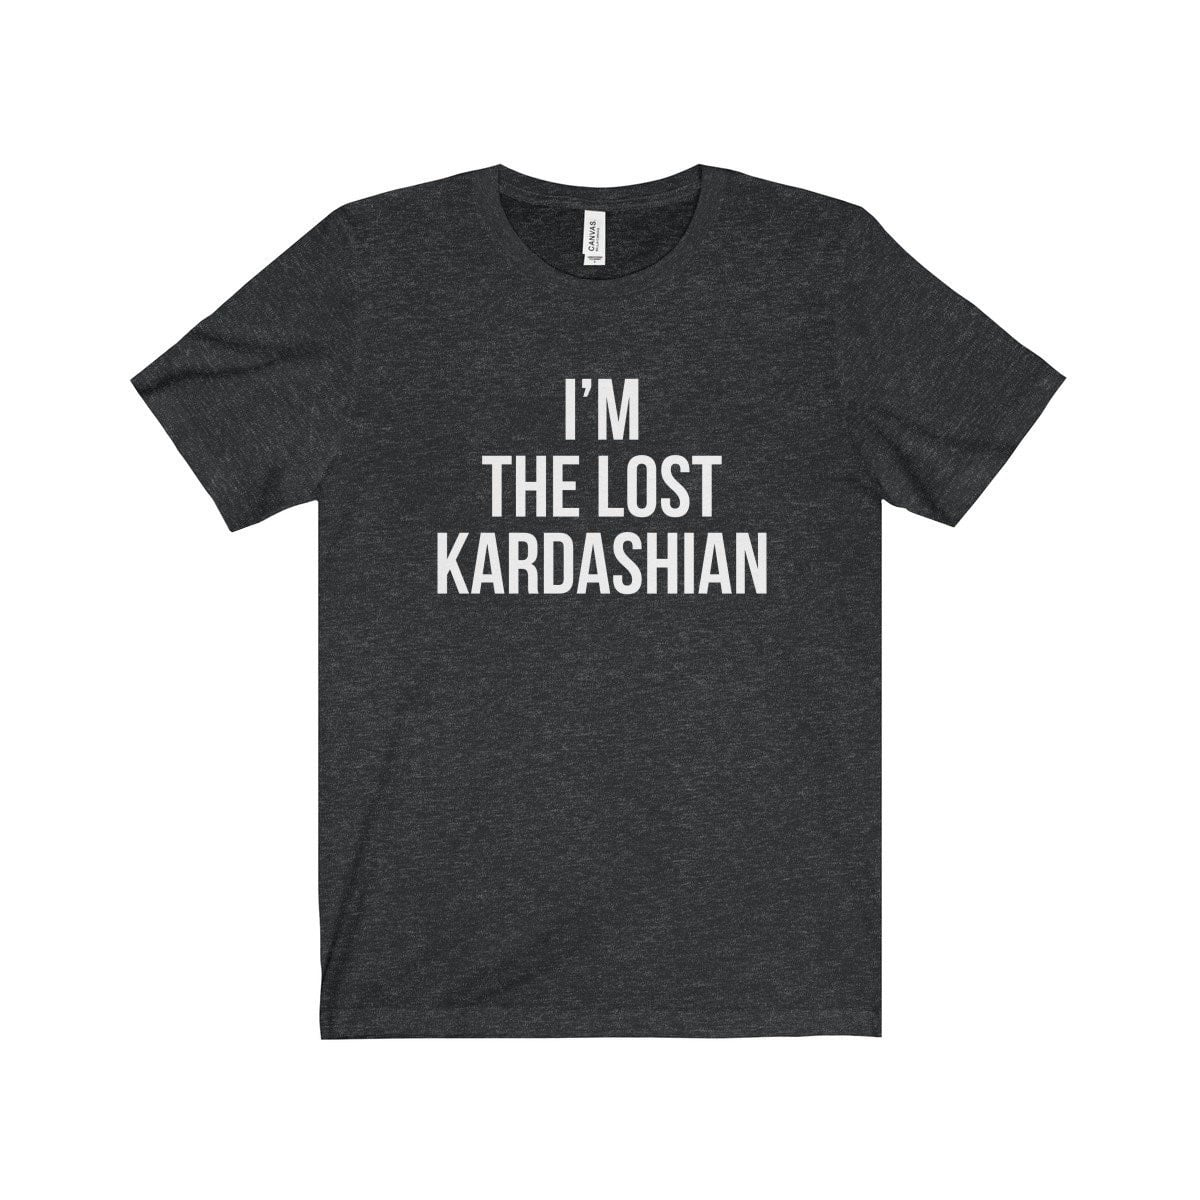 779a1bbf Best Gift Ideas For Kardashian Fans | POPSUGAR Celebrity